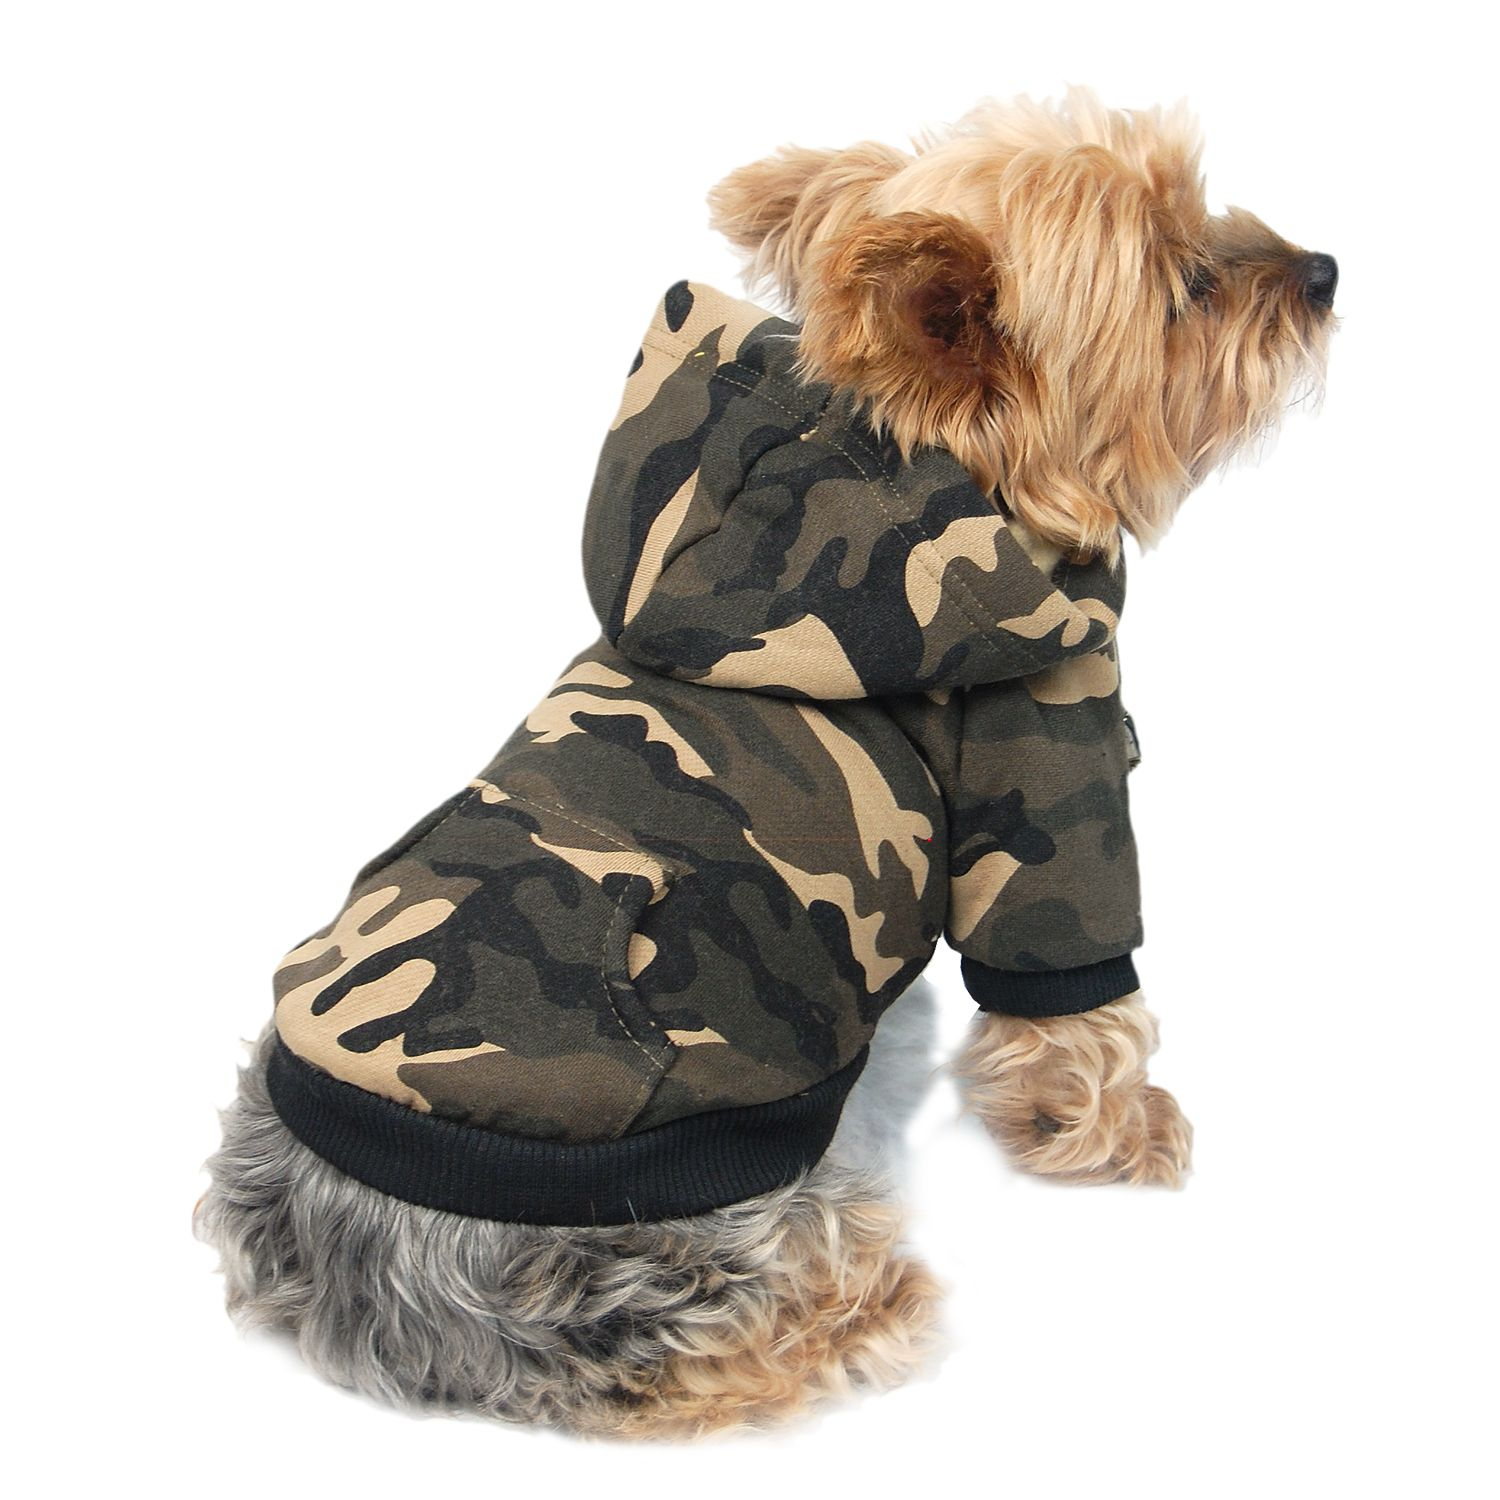 Green Camo Puppy Apparel Clothes Clothing Dog Sweatshirt Pullover Coat Hoodie Extra Small XS (Gift for Pet)